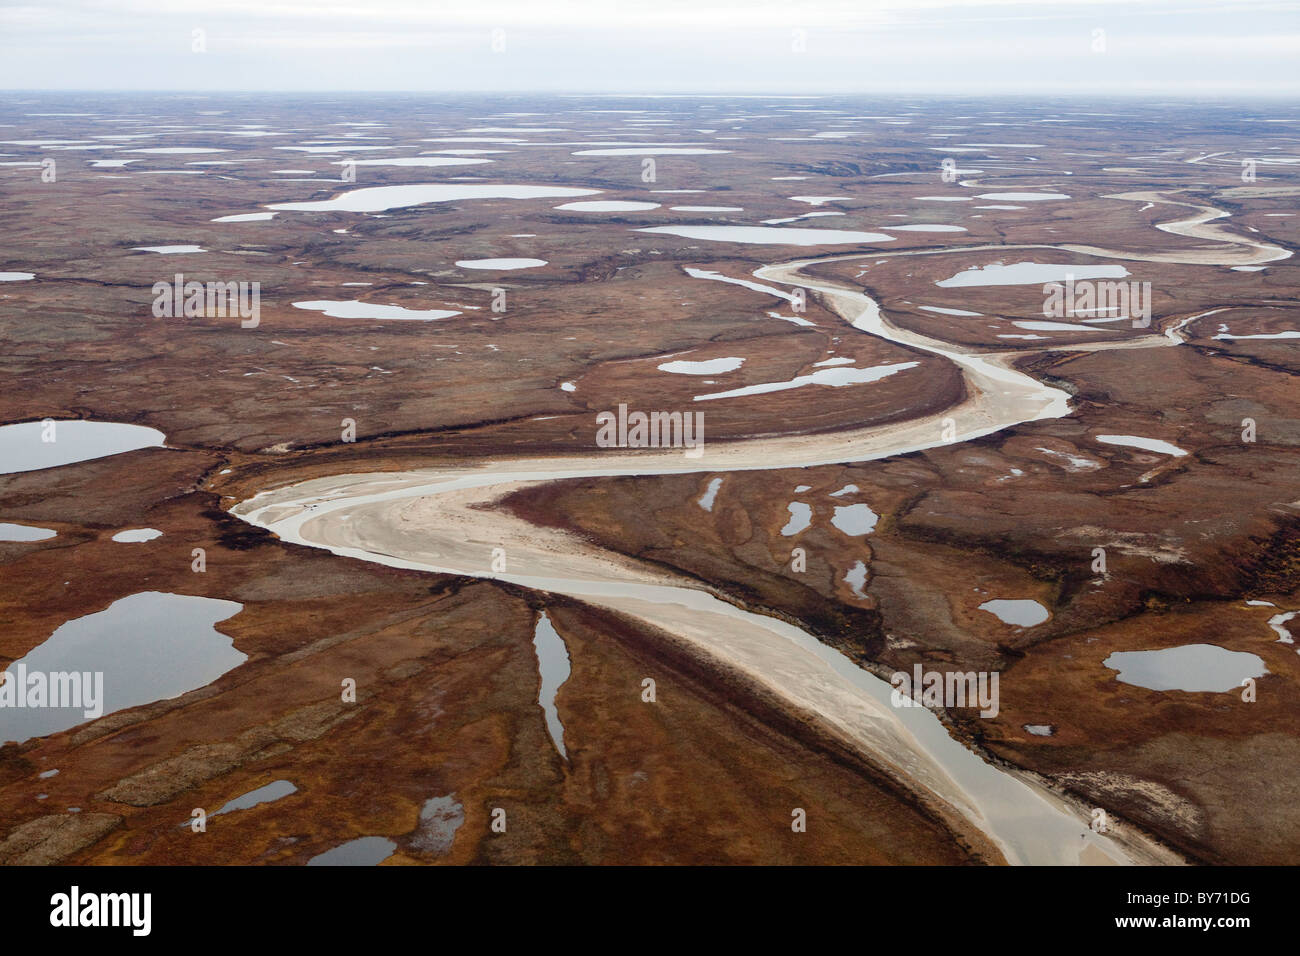 Aerial vews over the Yamal Peninsula in Western Siberia , Russia home to the Nenet tribes of nomadic reindeer herders. - Stock Image